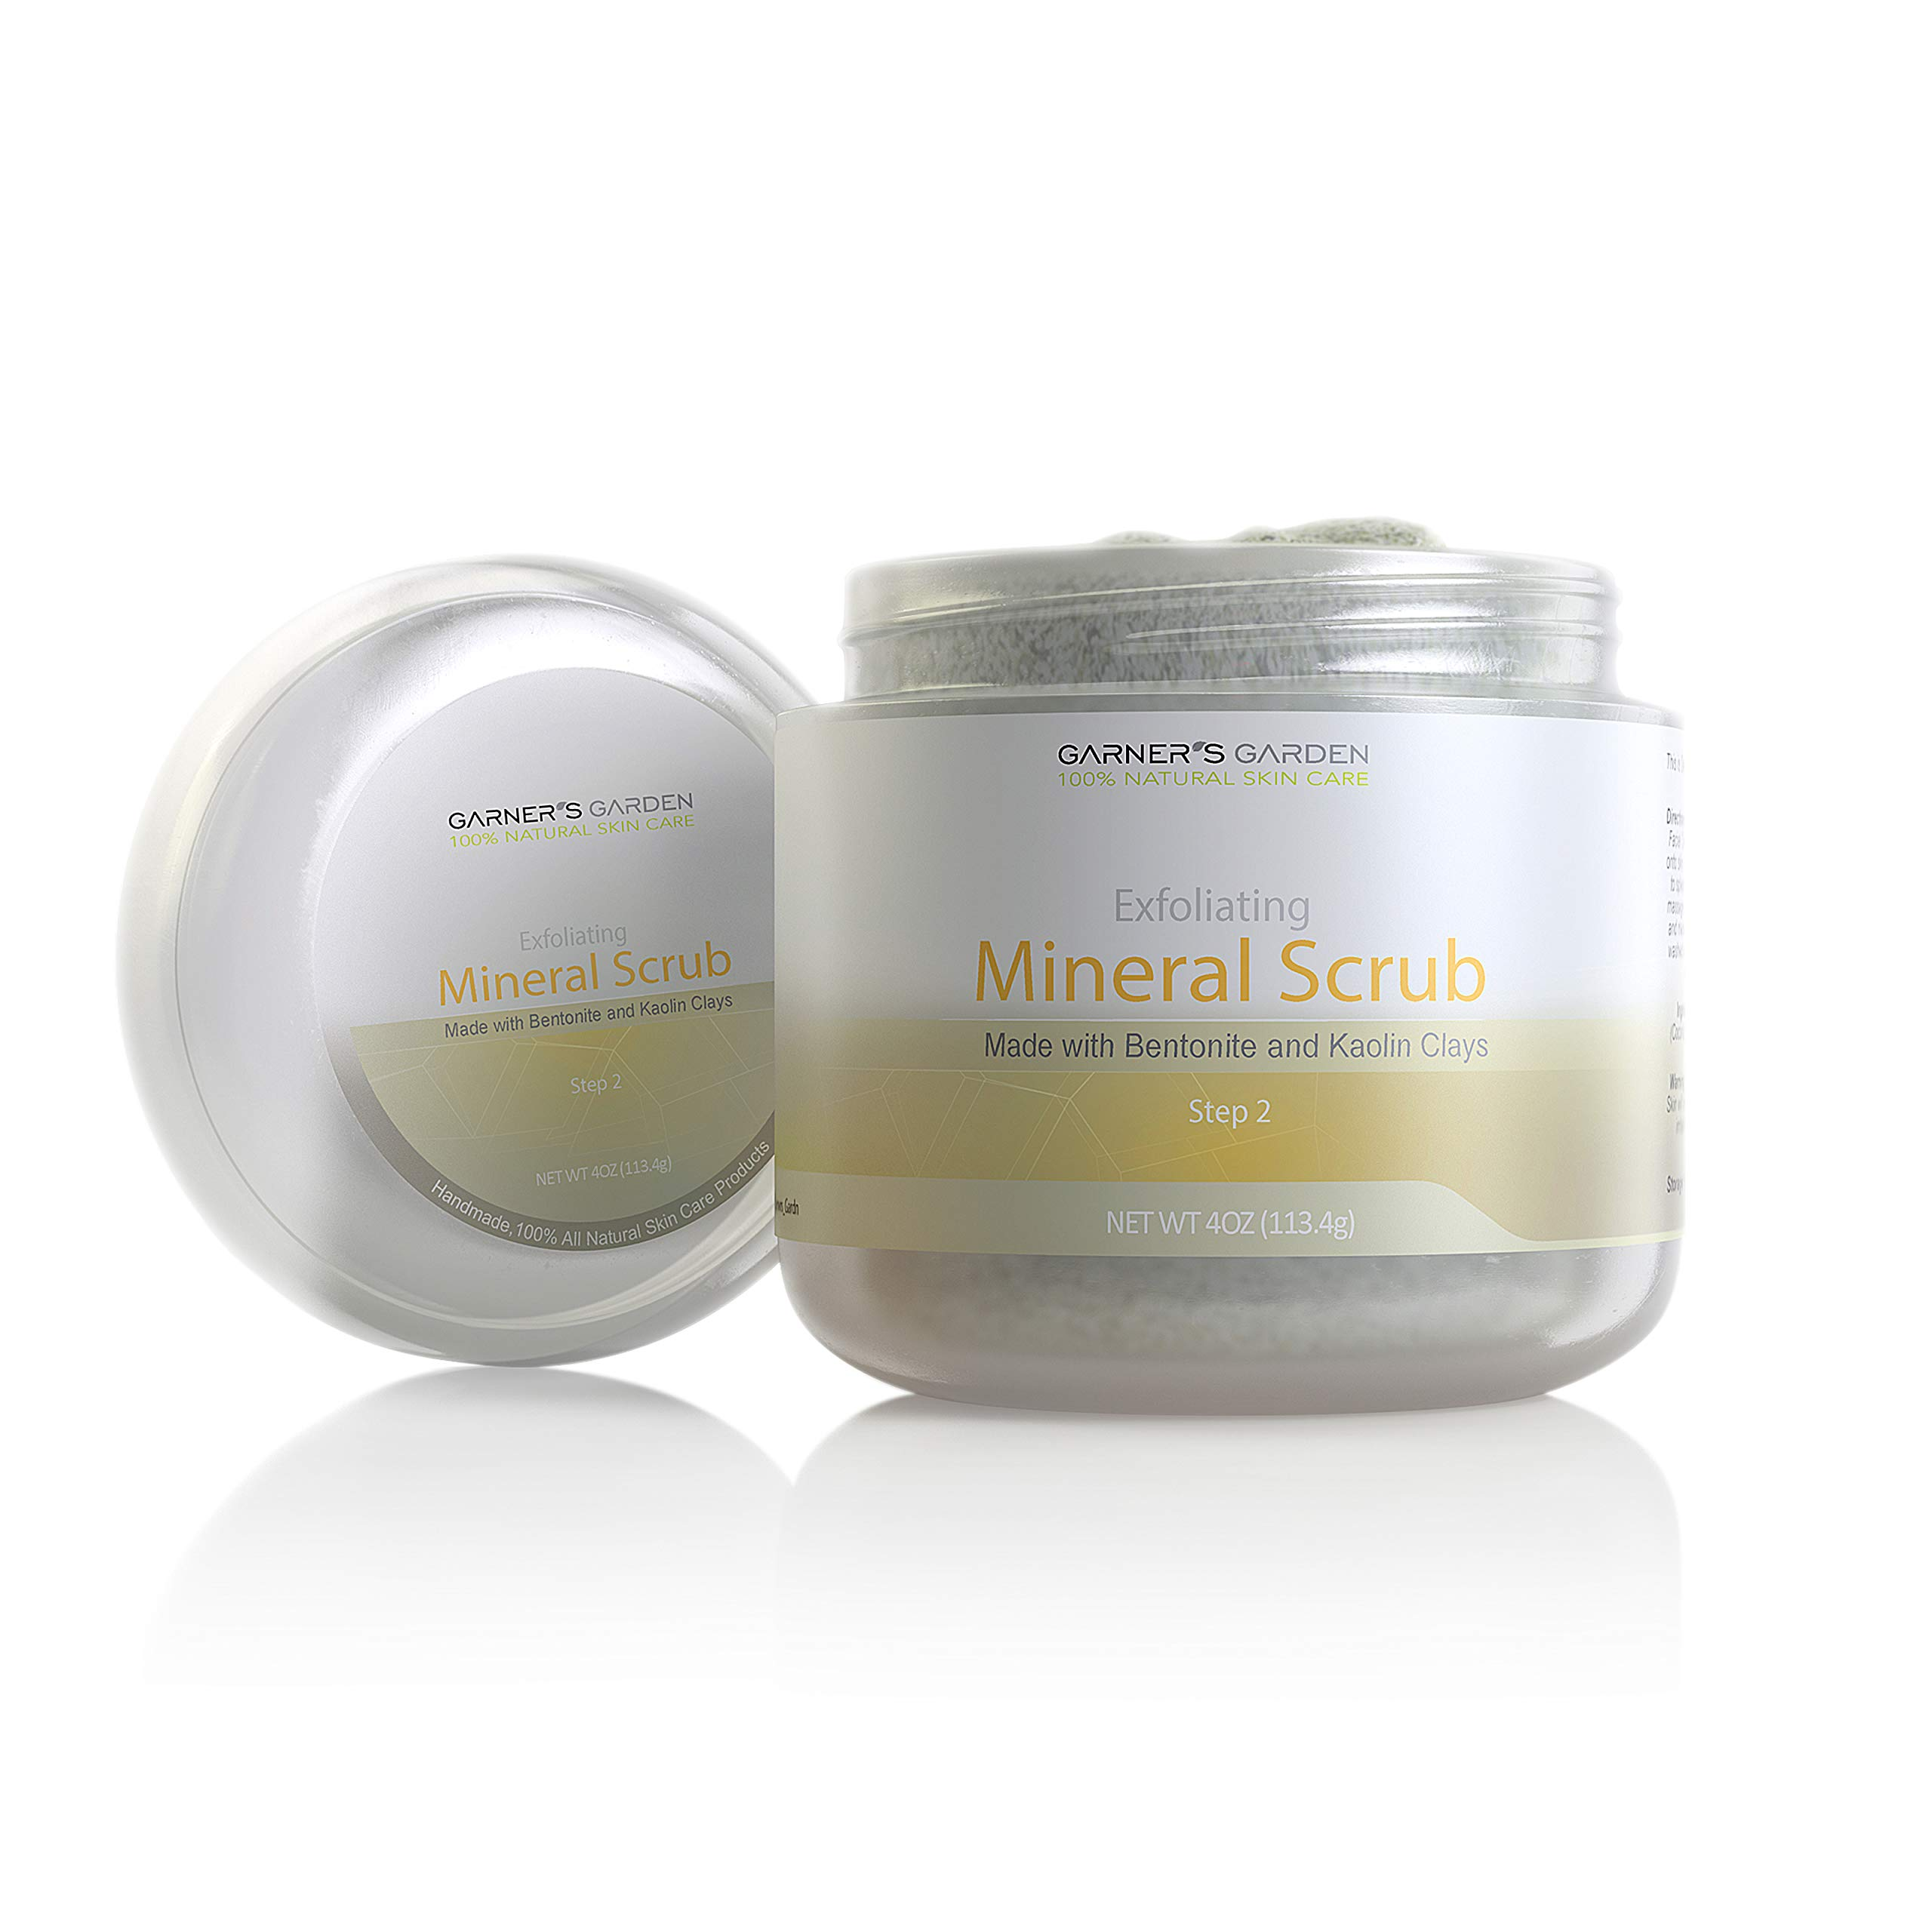 Garner's Garden Exfoliating Mineral Scrub 4 oz - Handmade, All Natural Ingredients, Made with Bentonite and Kaolin Clay to Exfoliate Face and Body, Coconut and Palm Oil to Seal/Protect Skin